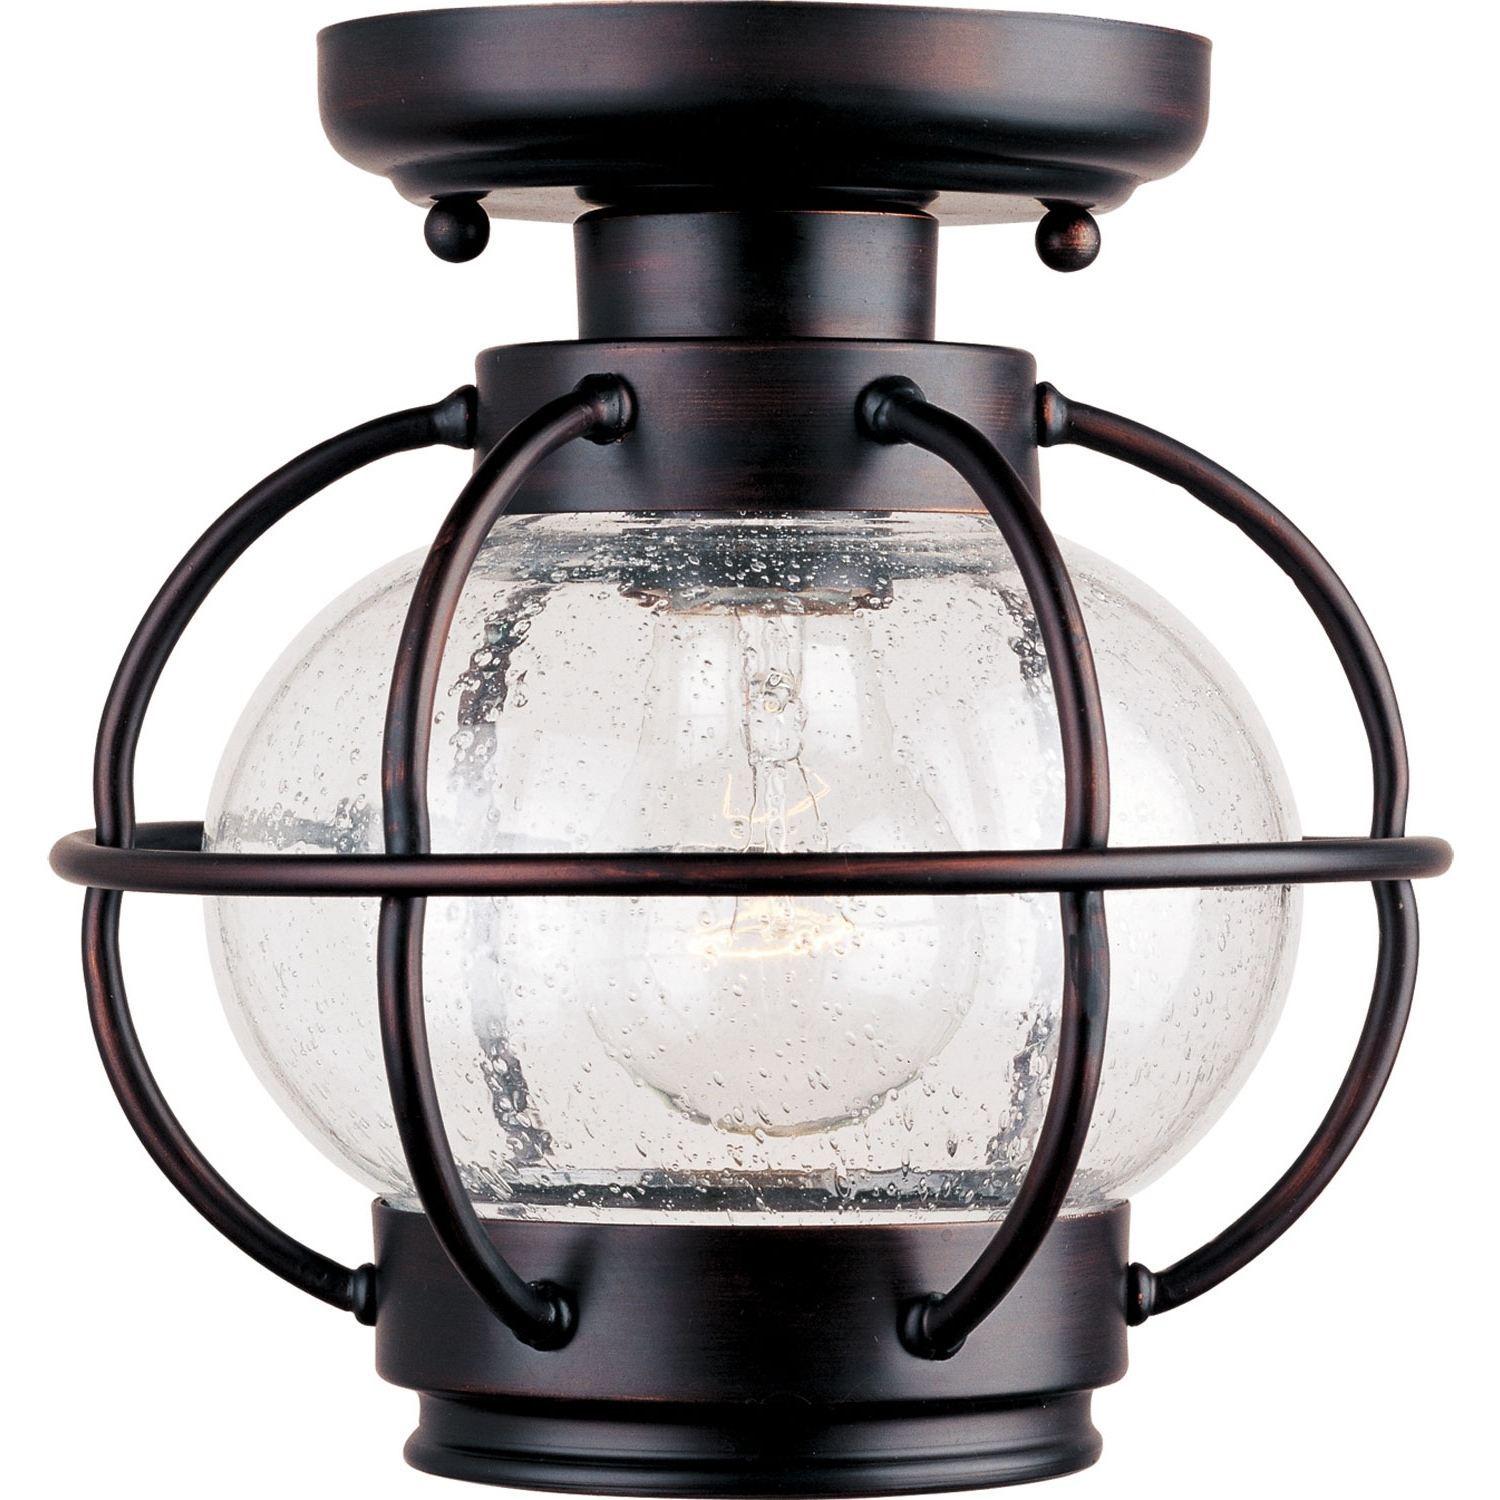 Motion Sensor Outdoor Ceiling Light – Outdoor Lighting Ideas For Favorite Outdoor Ceiling Fans With Motion Sensor Light (View 20 of 20)